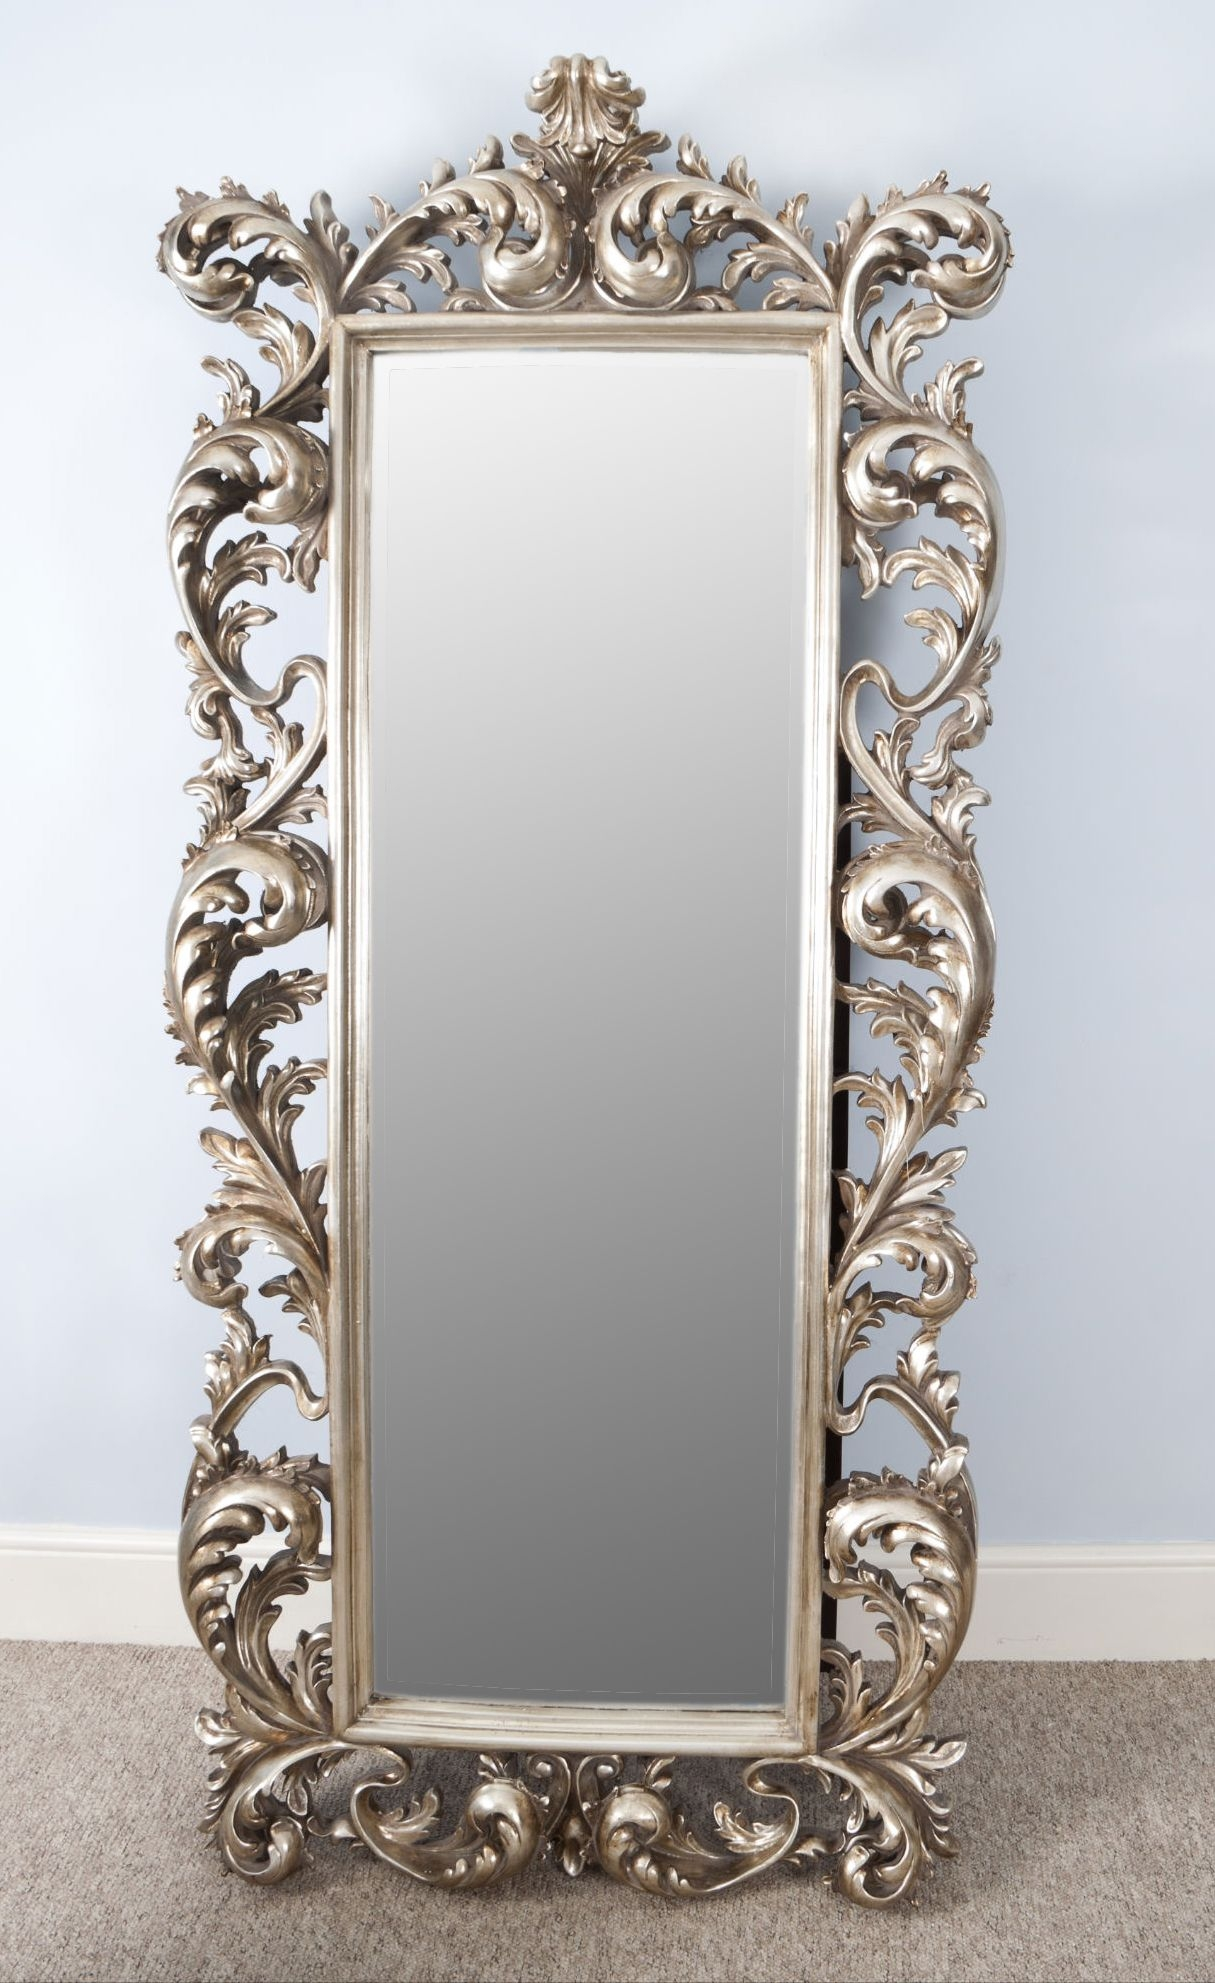 Classic Impression On Antique Wall Mirrors Vwho Inside Vintage Large Mirror (Image 5 of 15)